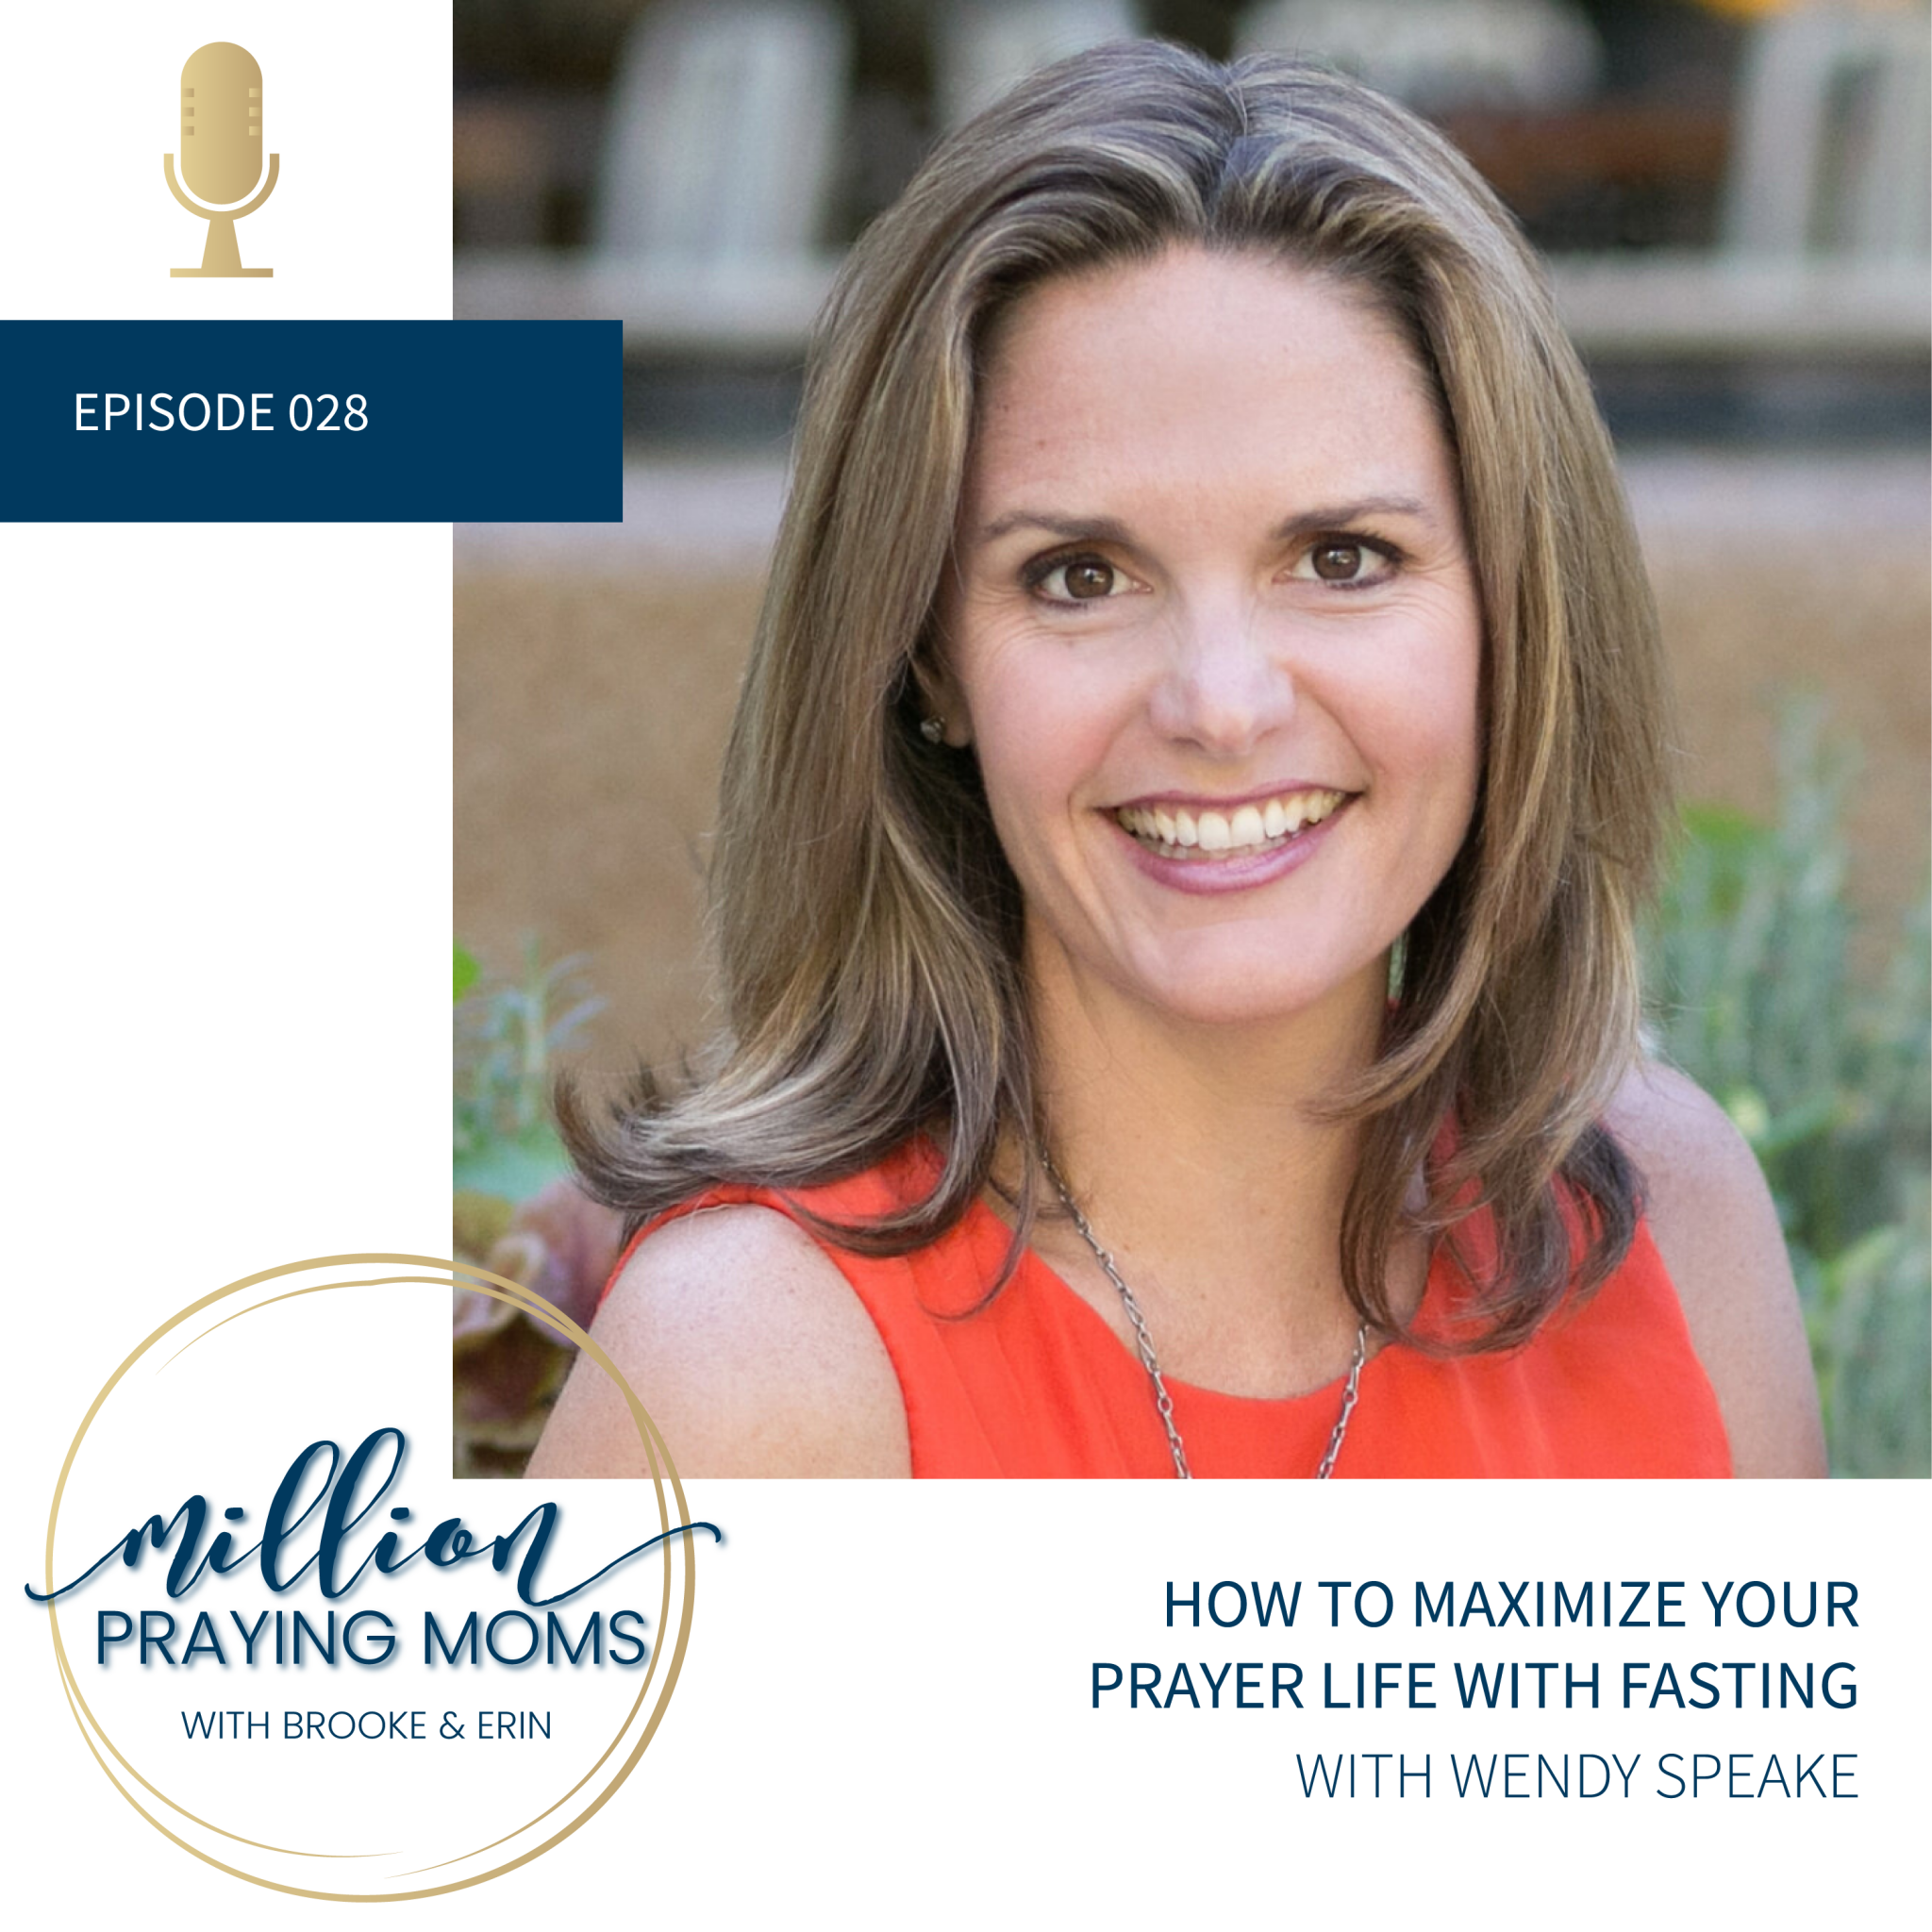 #28: How to Maximize Your Prayer Life with Fasting